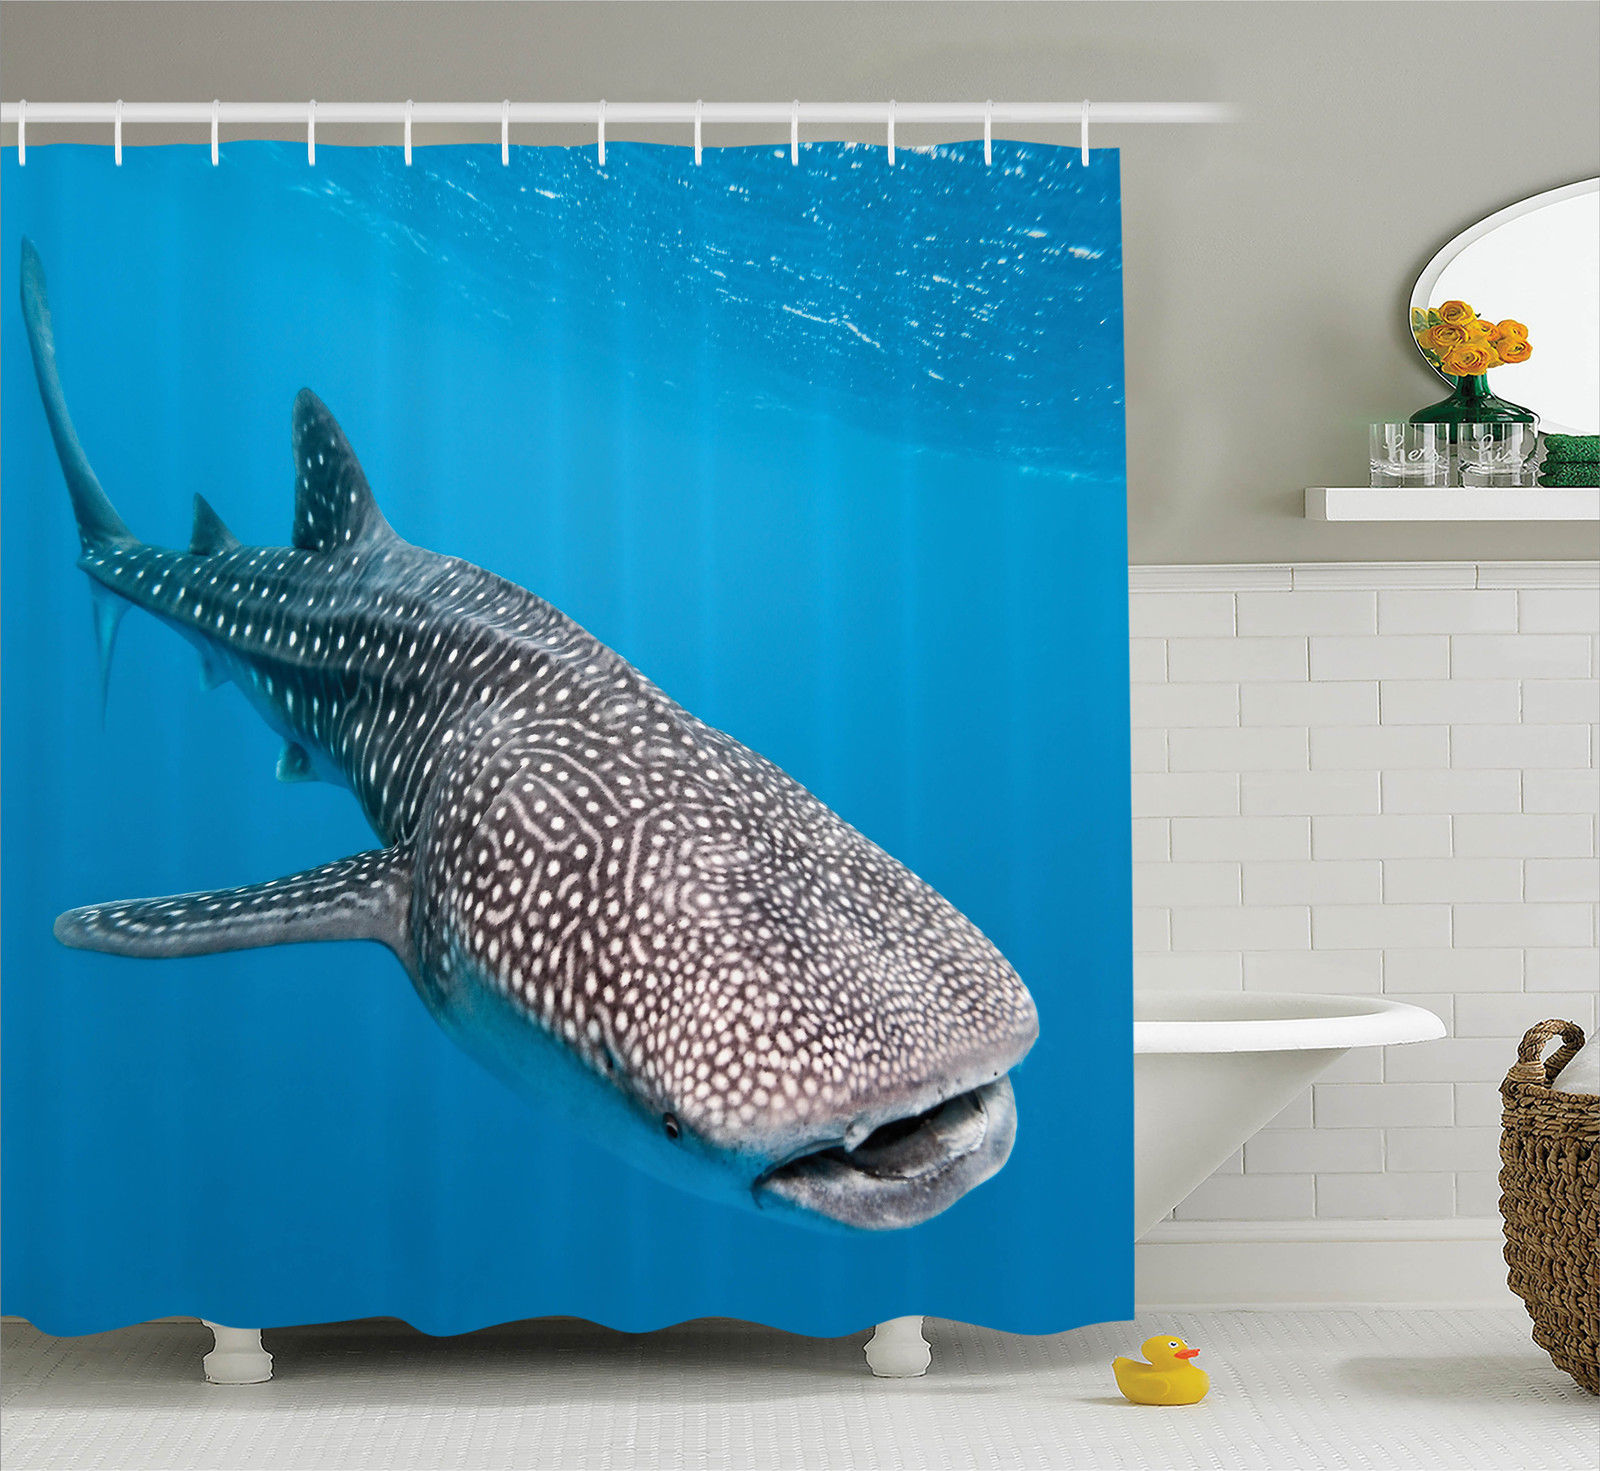 Sea Animals Decor Whale Shark Swimming Predators Hunter Clear Water Under The Sea Picture, Bathroom Accessories, 69W X 84L Inches Extra Long, By Ambesonne